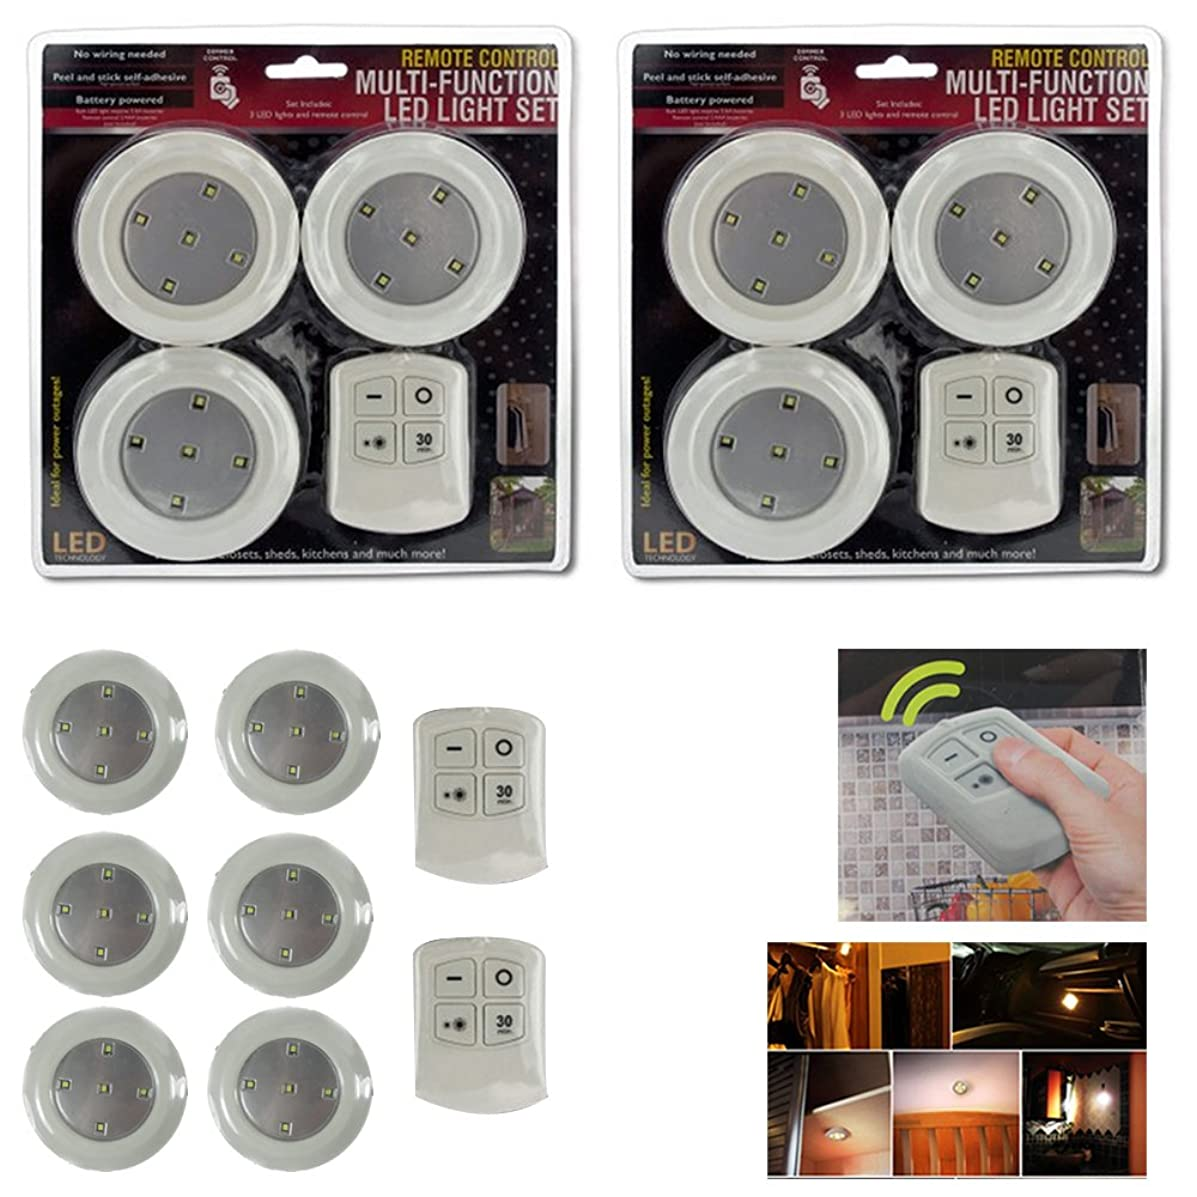 6 x LED Round Light Dimmable Touch Cabinet Closet Kitchen Remote Control Battery